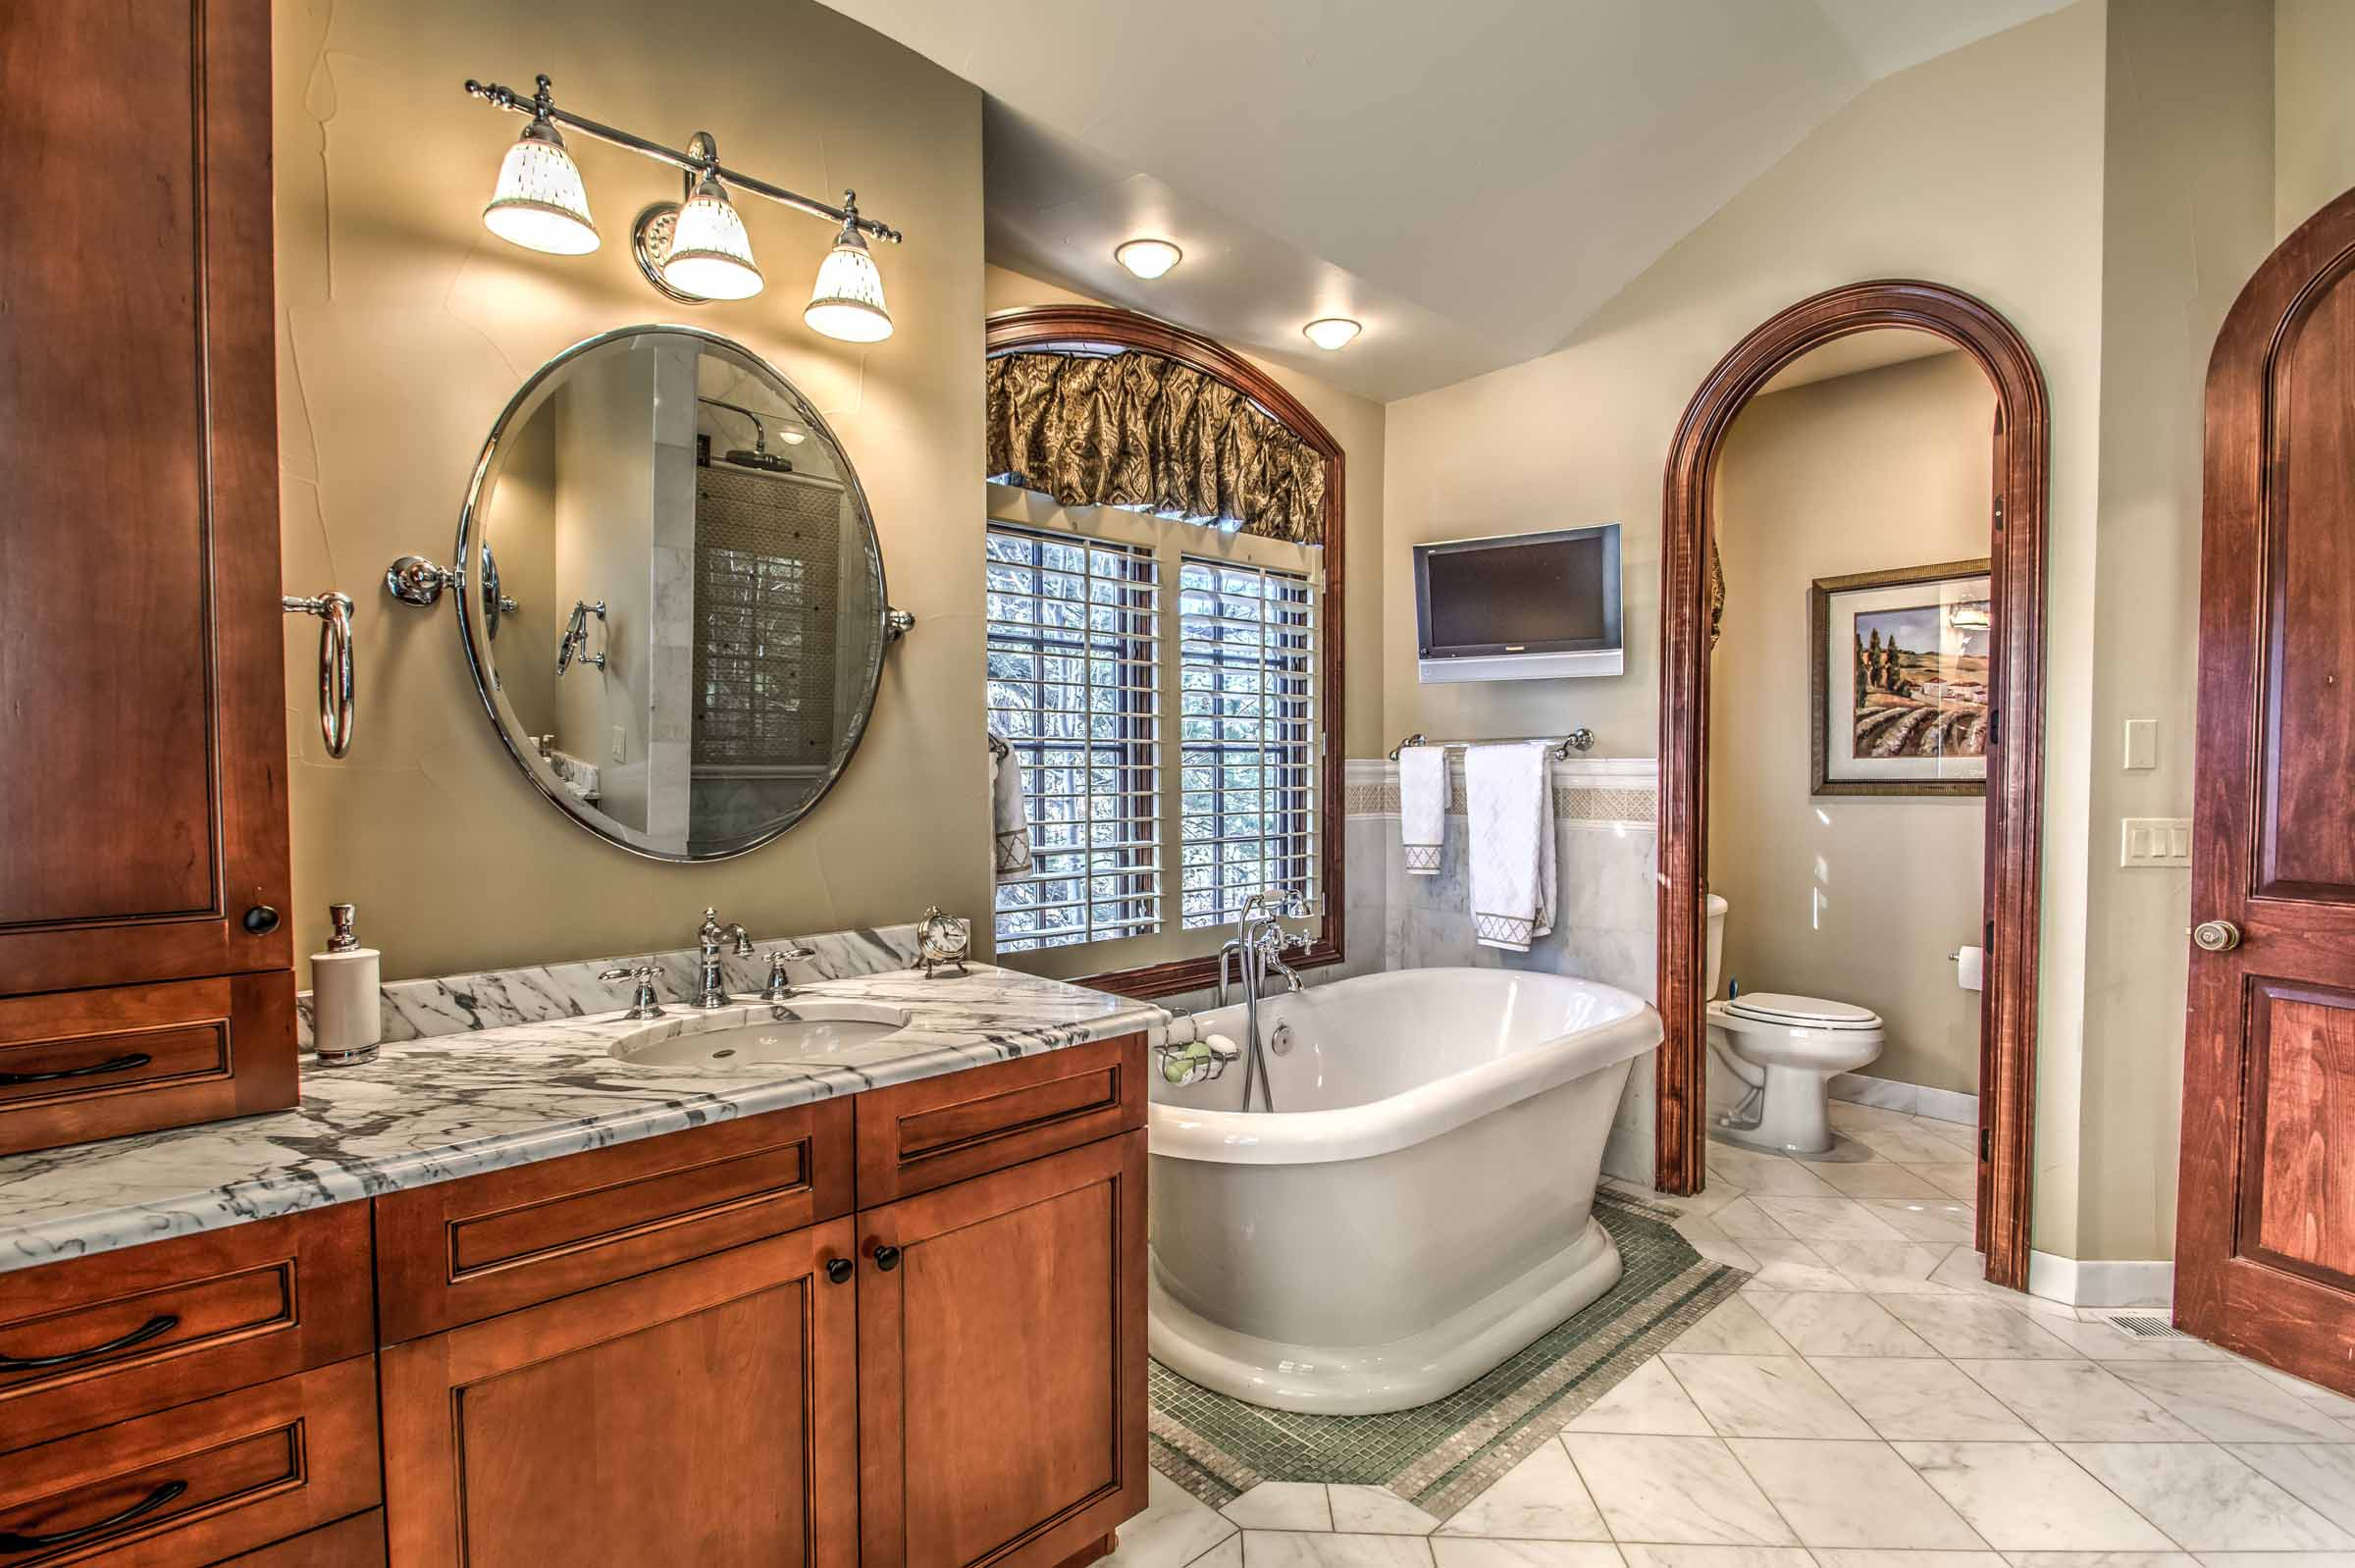 Master Bathroom Freestanding Tub Castle Rock Colorado.jpg